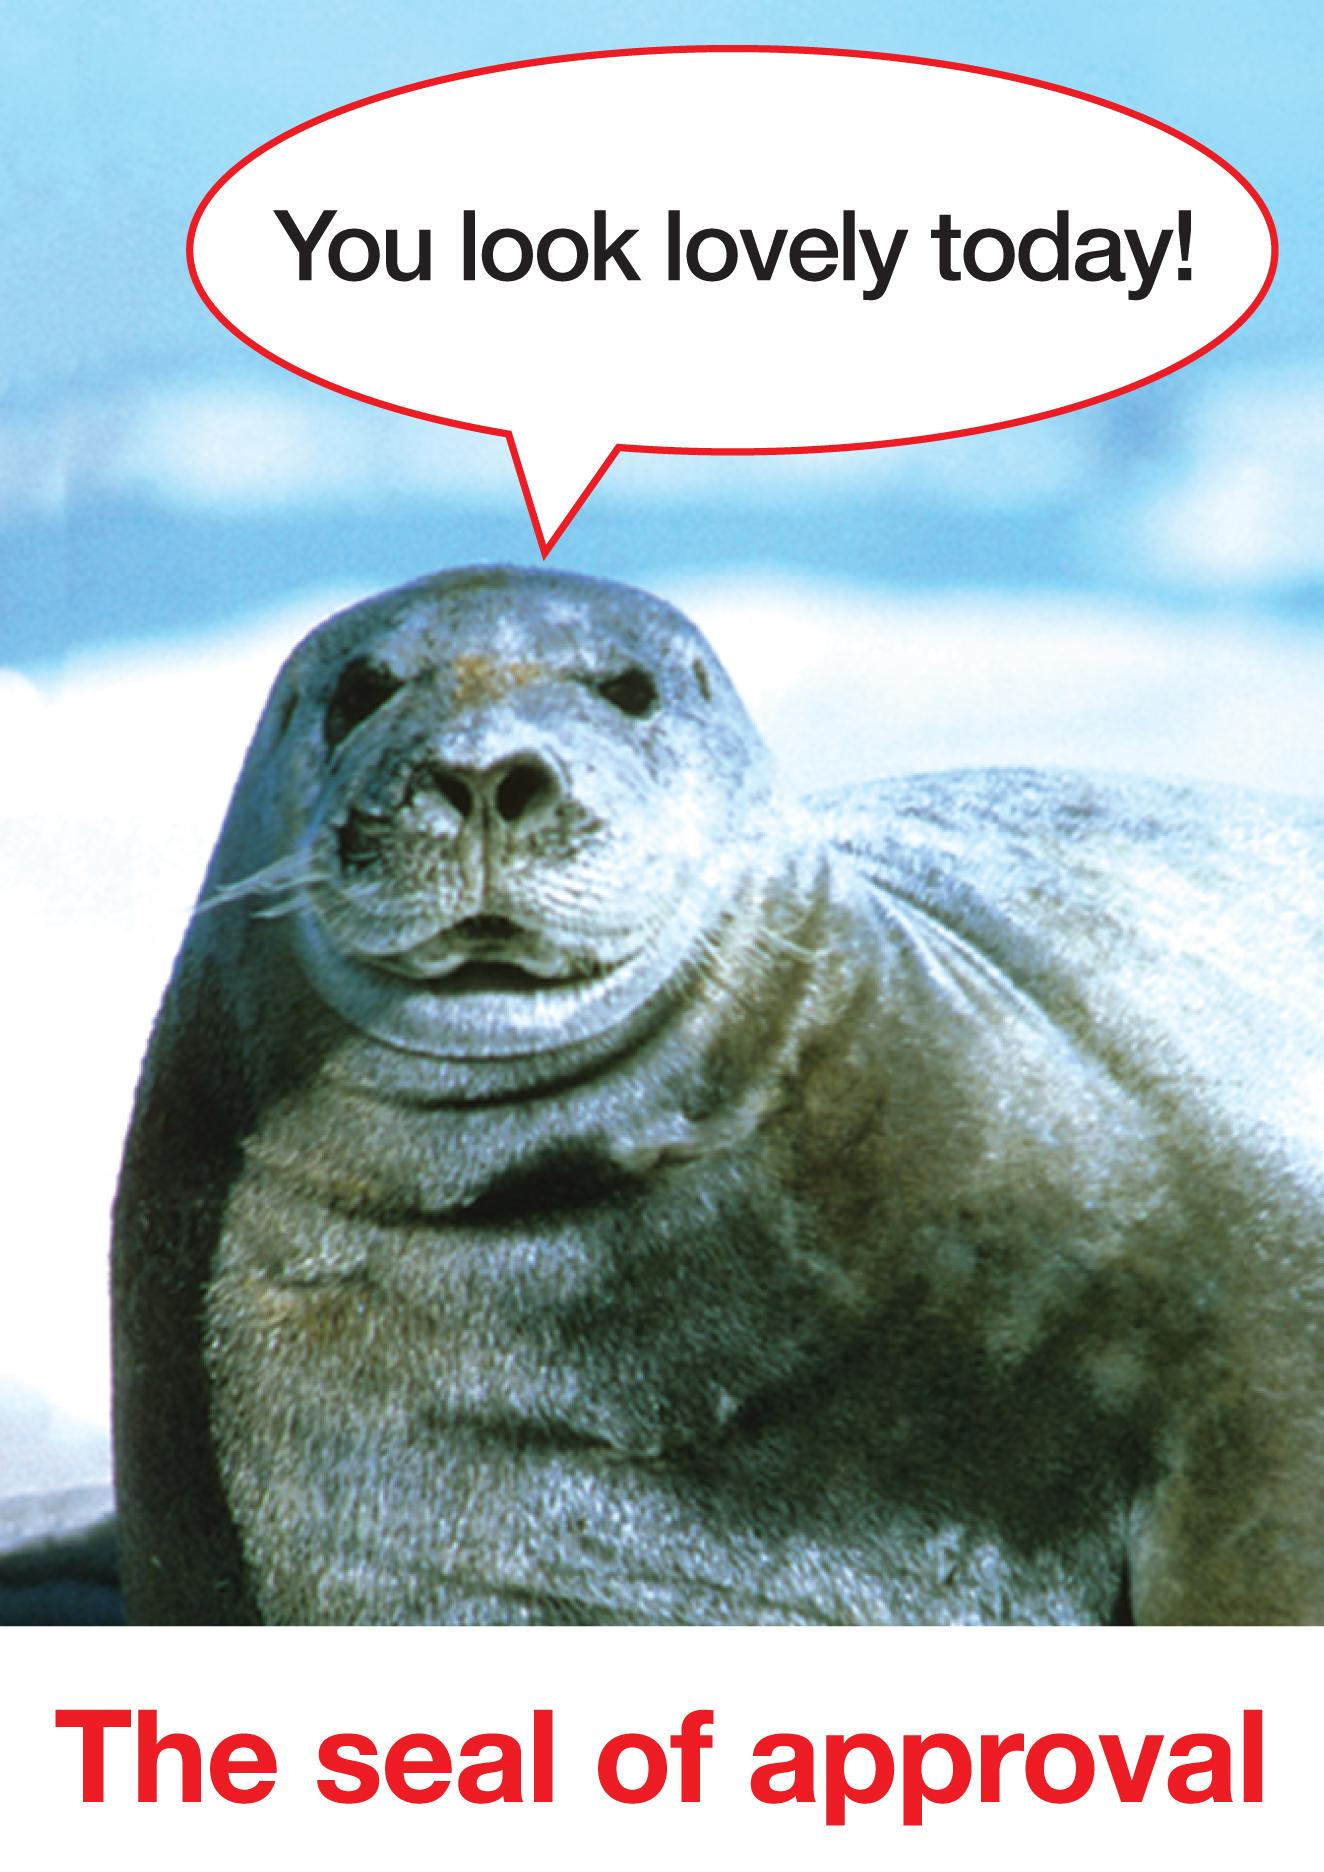 'You look lovely today' The Seal of approval